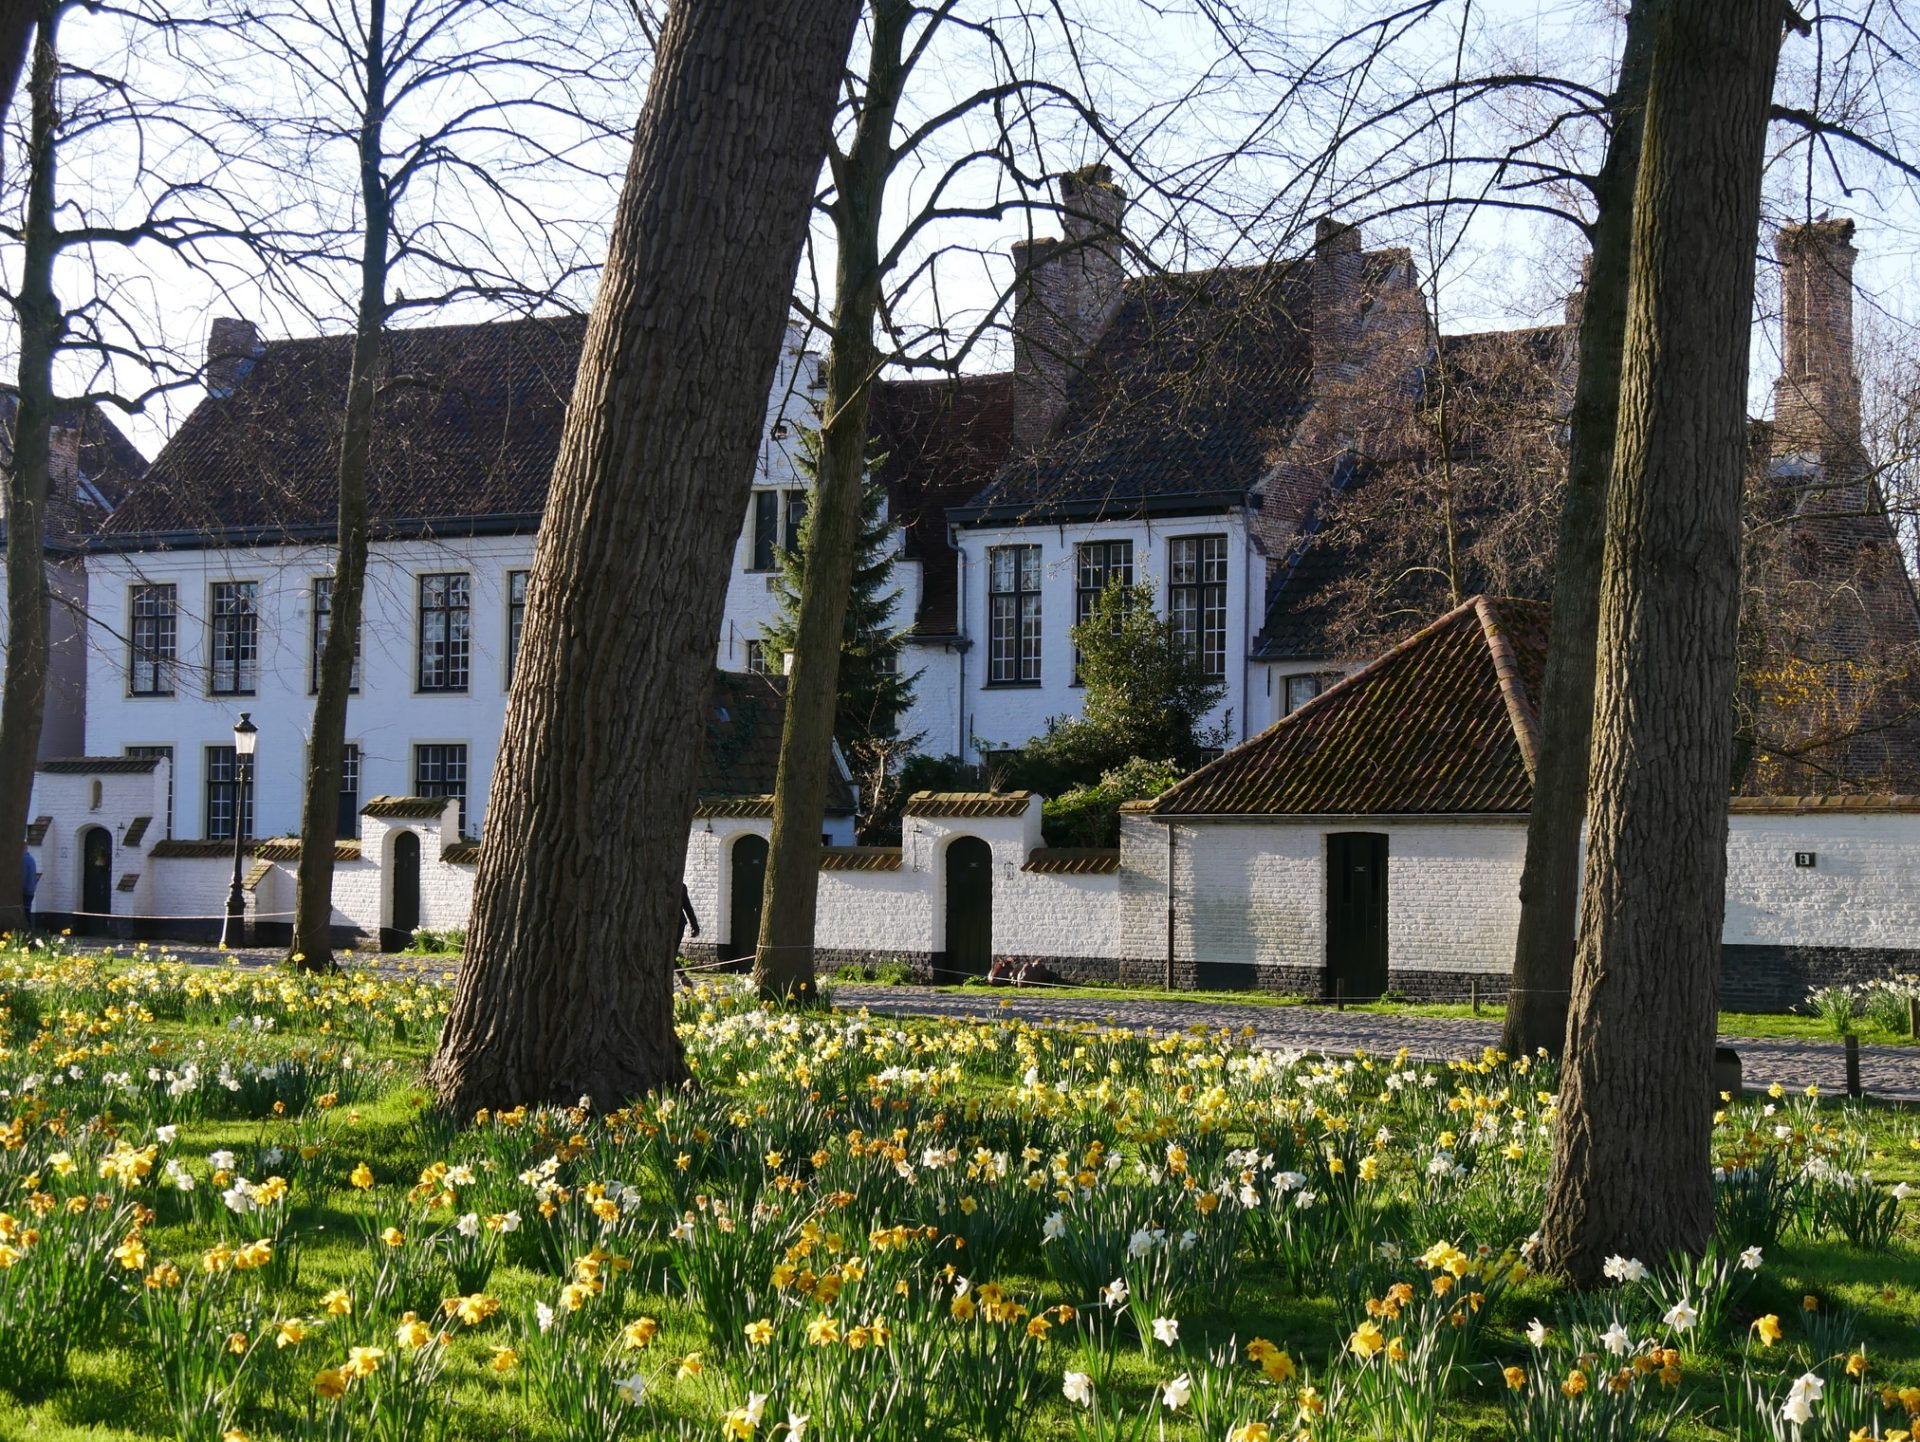 The Princely Beguinage Ten Wijngaerde